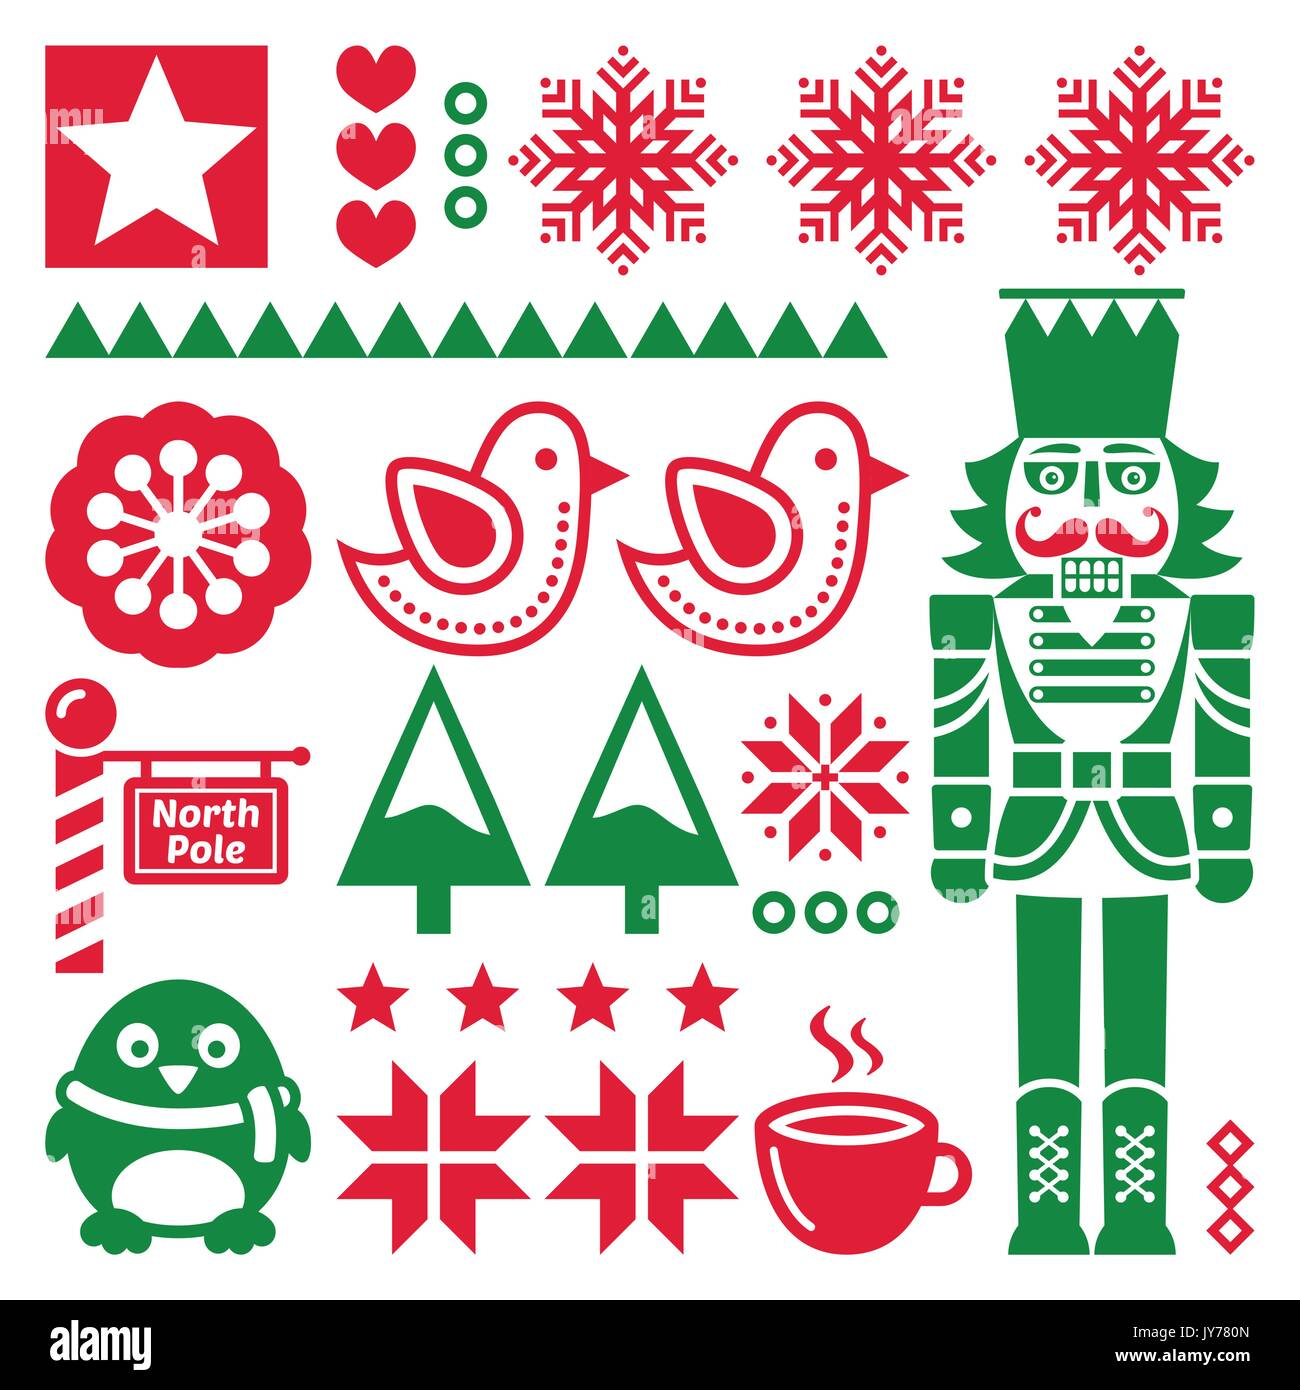 Christmas Pattern.Christmas Seamless Red Pattern With Nutcracker Folk Art